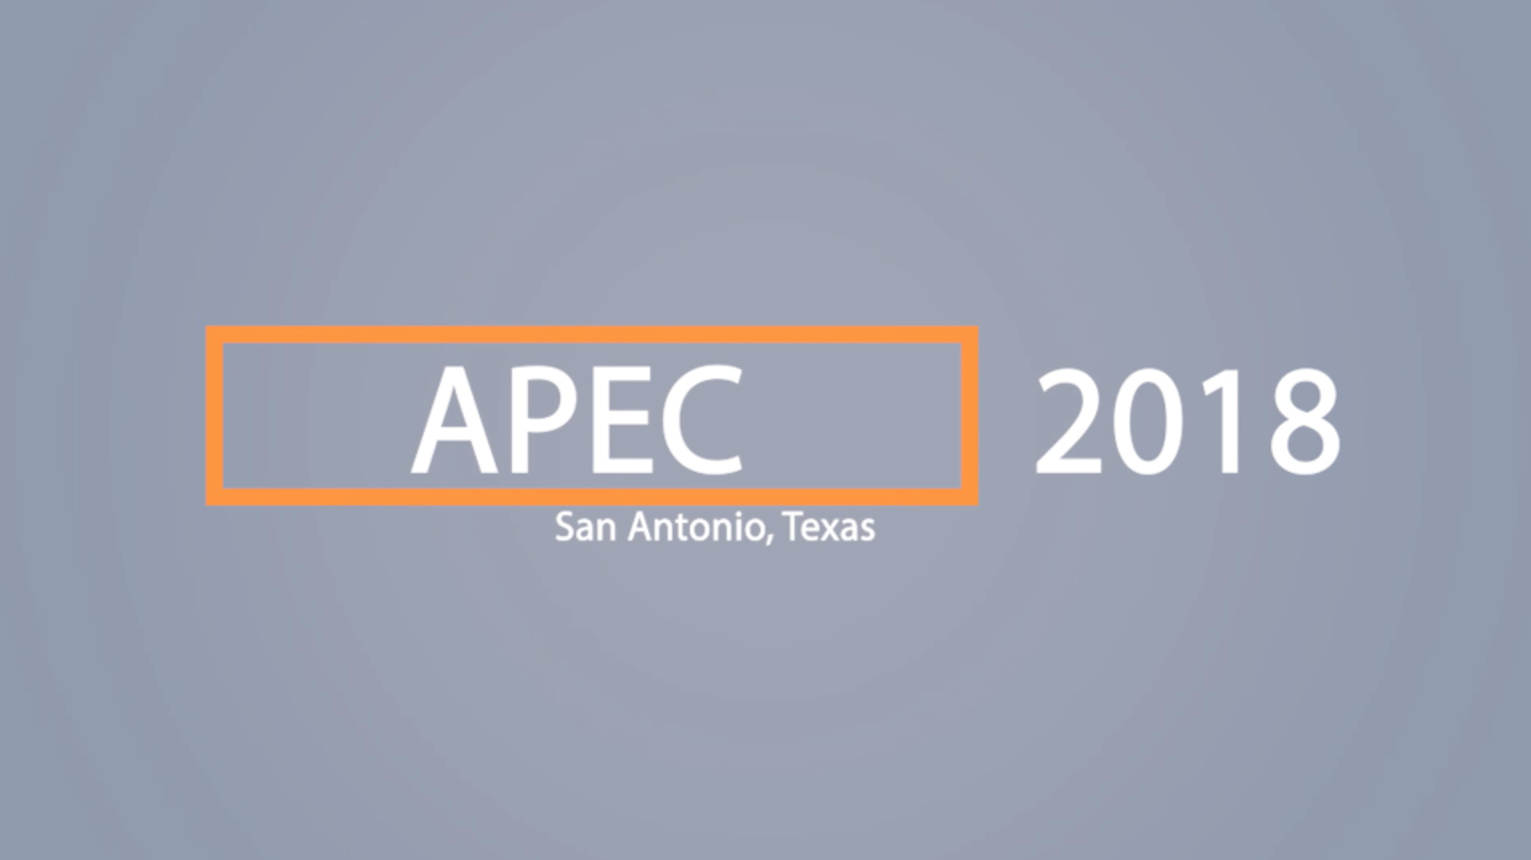 APEC 2018 in San Antonio, Texas: Save the Date!